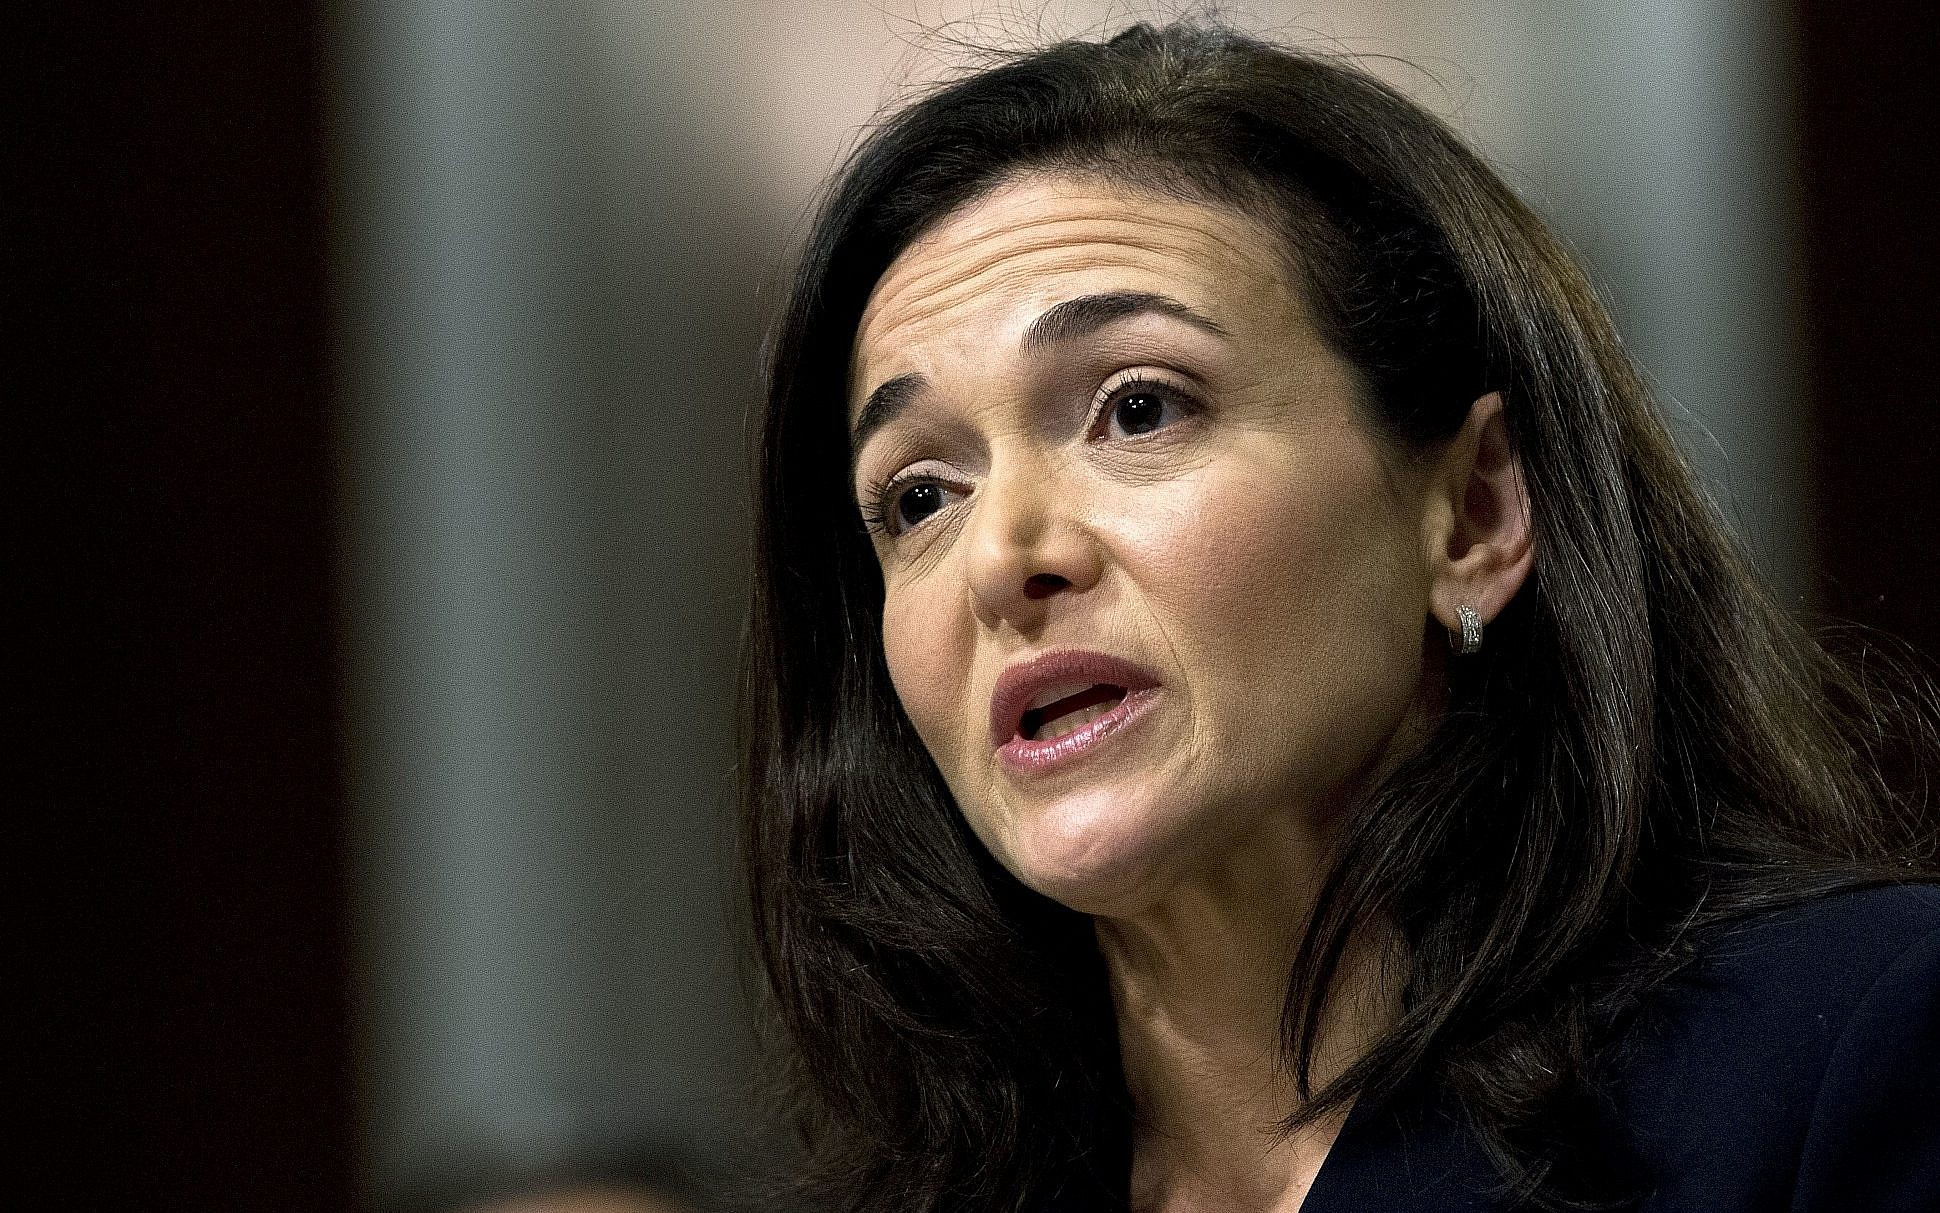 Sheryl Sandberg said to have asked Facebook staff to research Soros